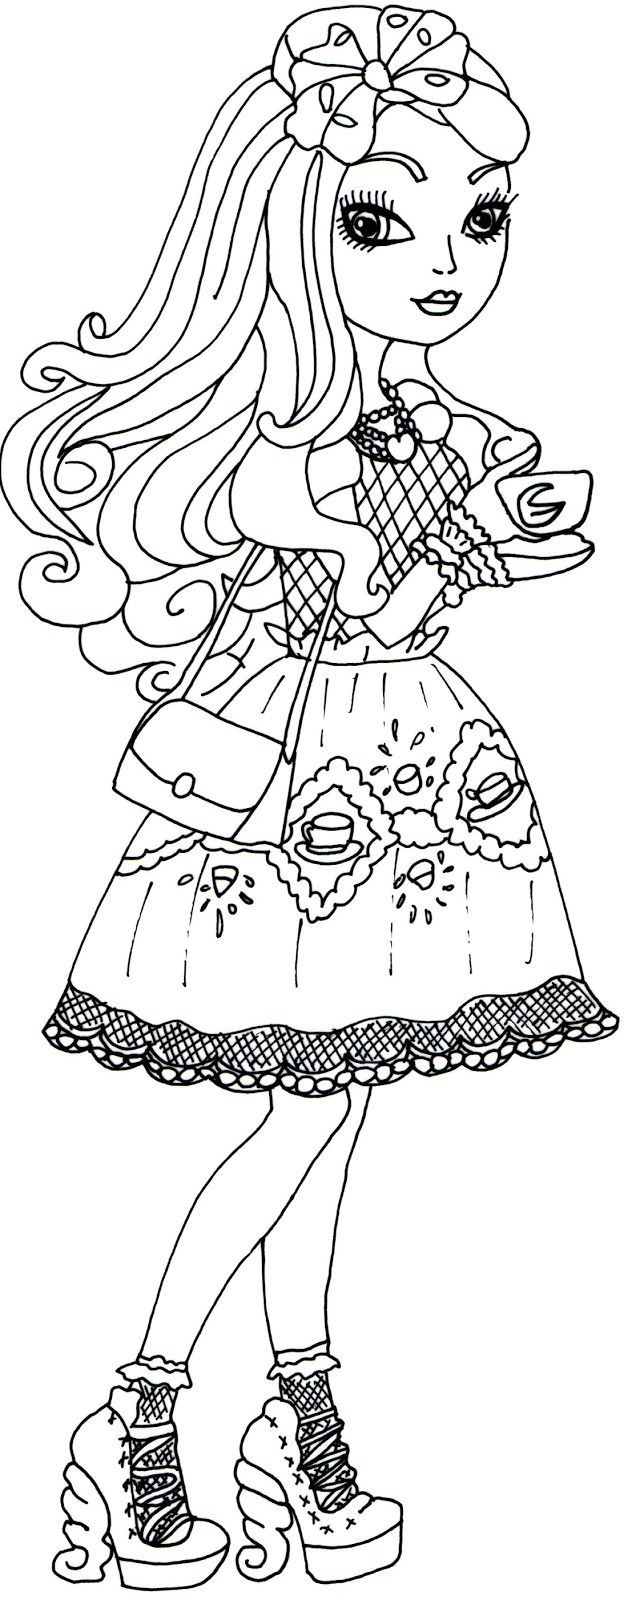 Ever after high coloring games online - Free Printable Ever After High Coloring Pages Apple White